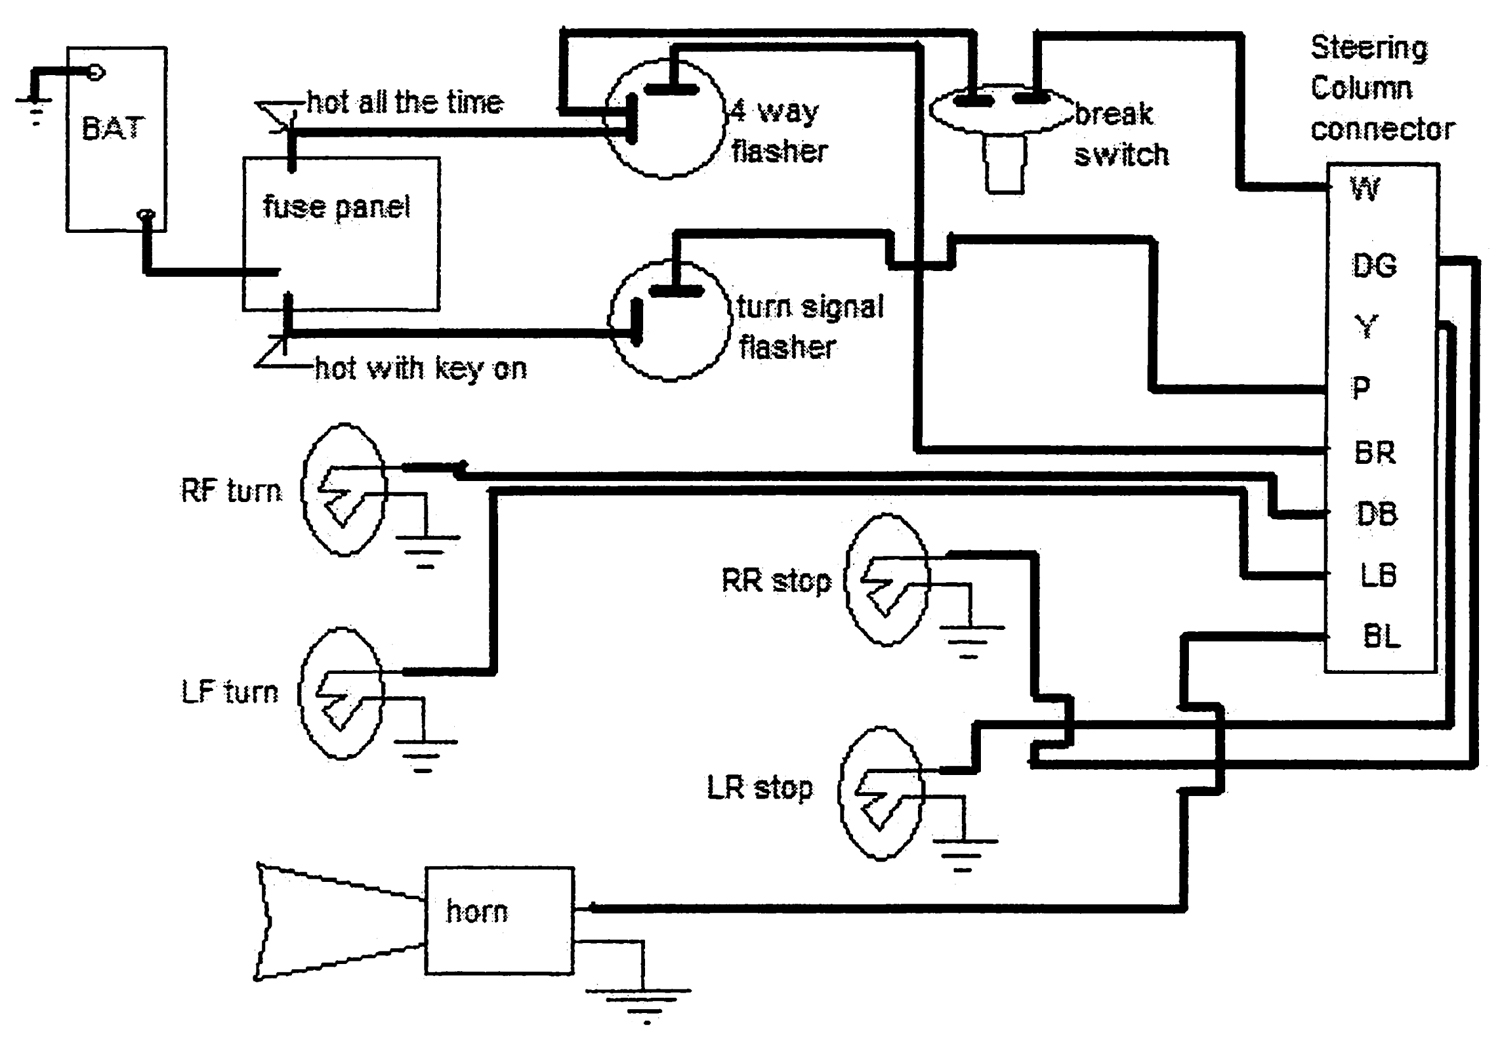 elect sycmatic tech tips Basic Electrical Wiring Diagrams at gsmx.co